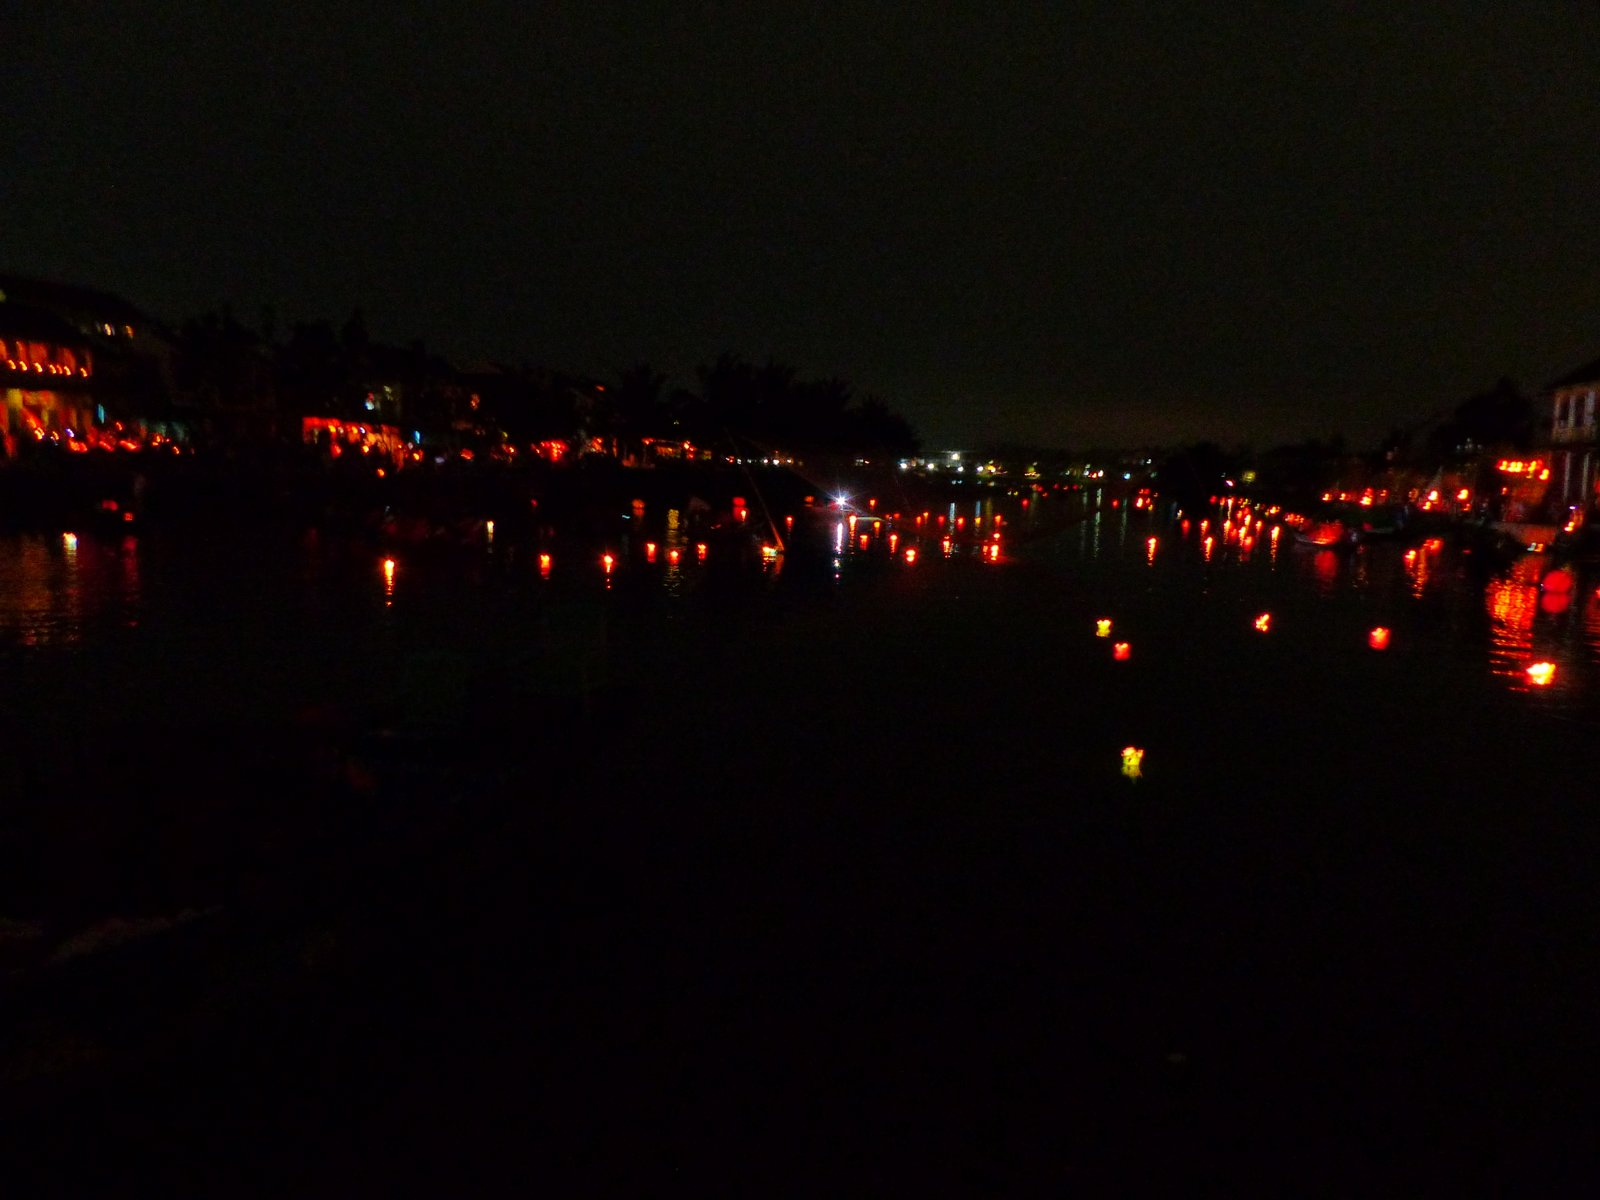 Lanterns floating down the river.